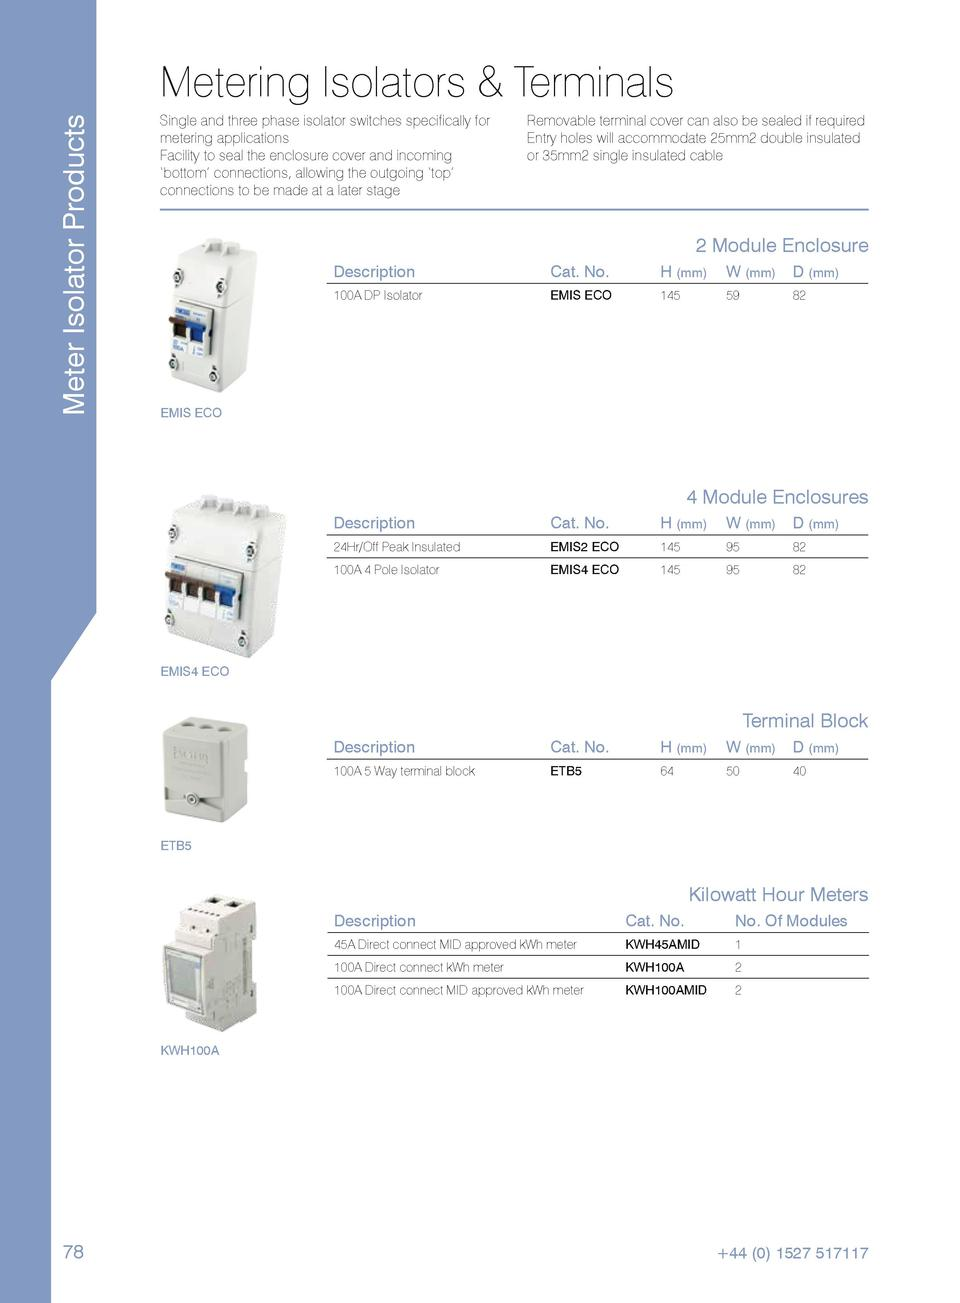 Meter Isolator Products  Metering Isolators   Terminals Single and three phase isolator switches specifically for metering...